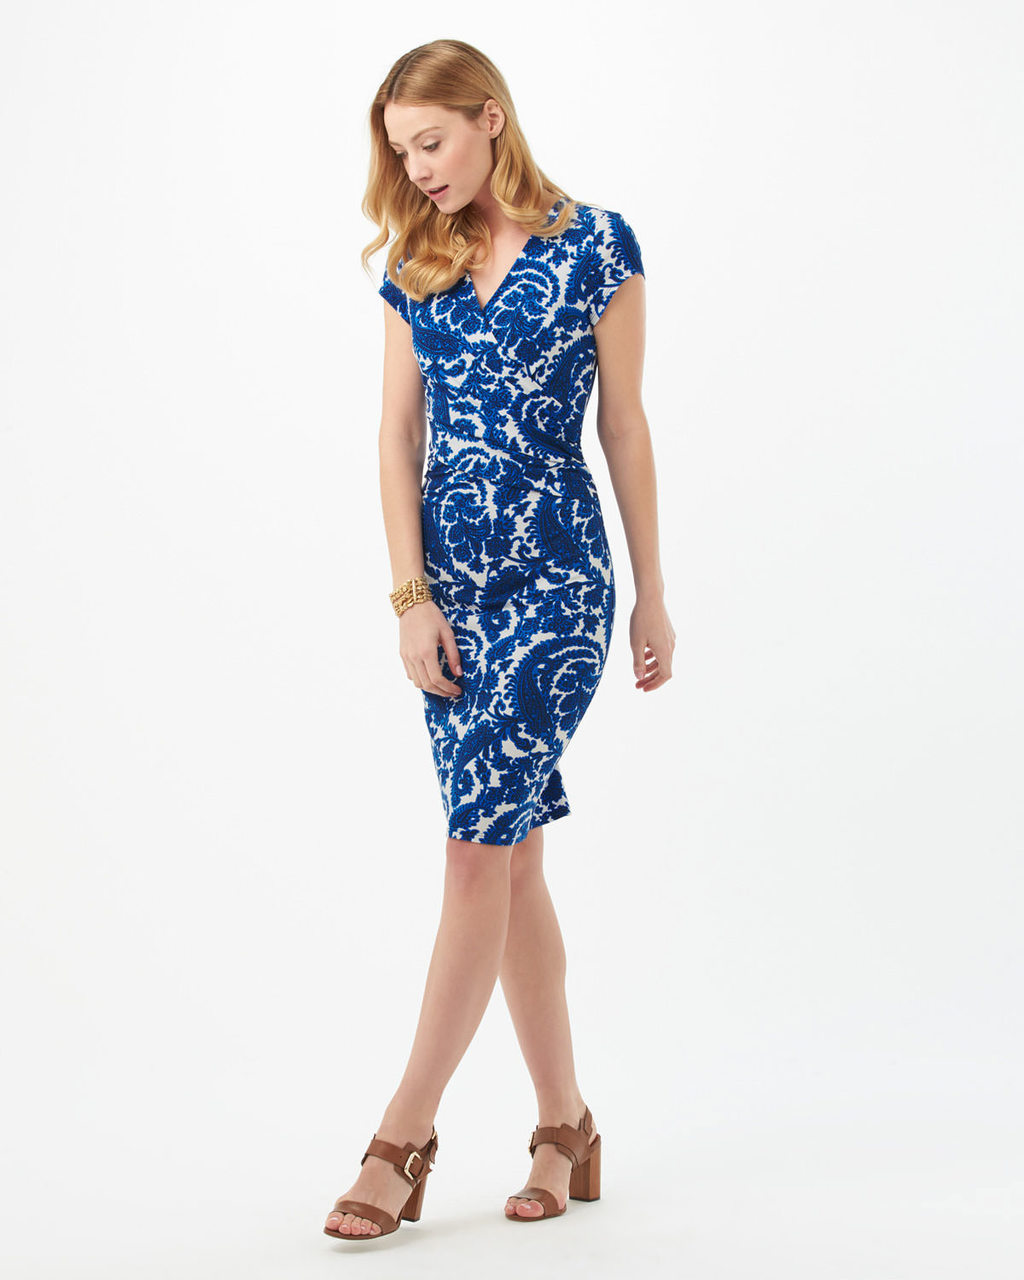 Paisley Dress - style: shift; length: below the knee; neckline: v-neck; sleeve style: capped; fit: tailored/fitted; predominant colour: royal blue; secondary colour: pale blue; fibres: viscose/rayon - stretch; occasions: occasion; sleeve length: short sleeve; pattern type: fabric; pattern: patterned/print; texture group: woven light midweight; season: s/s 2016; wardrobe: event